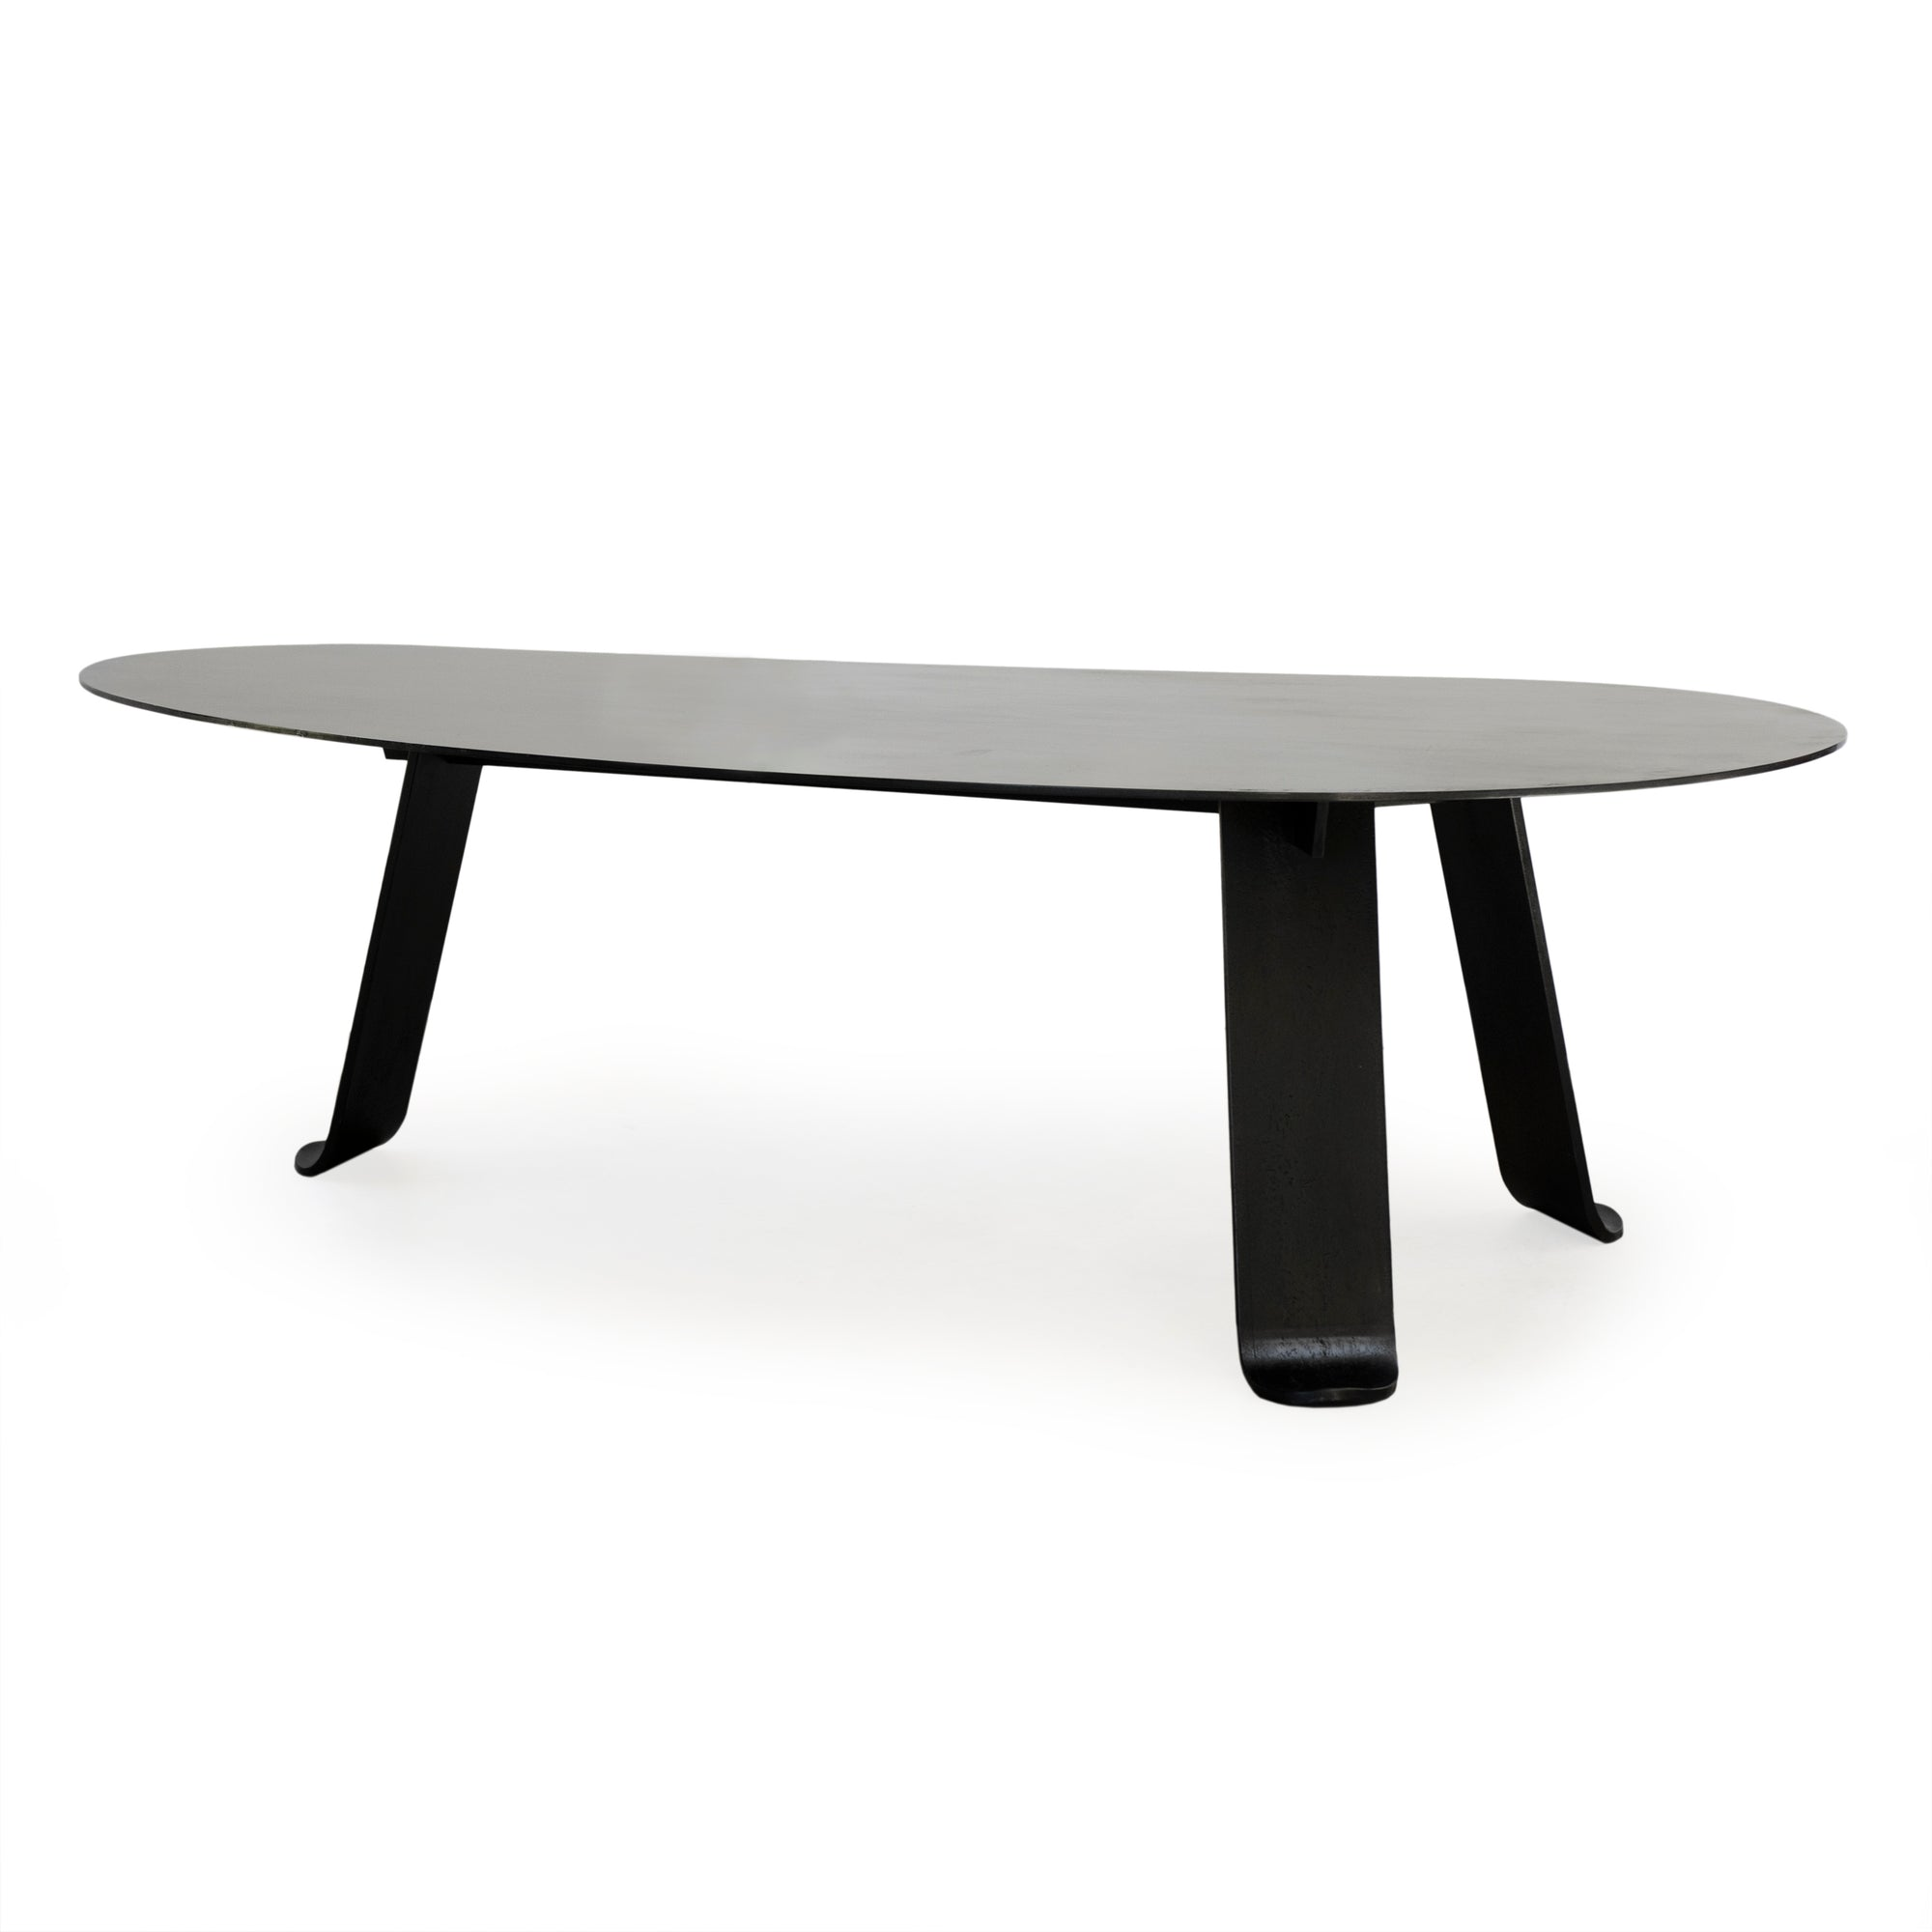 WYETH Chrysalis Dining Table / Desk No. 1 in Blackened Steel with Hot Zinc Finish